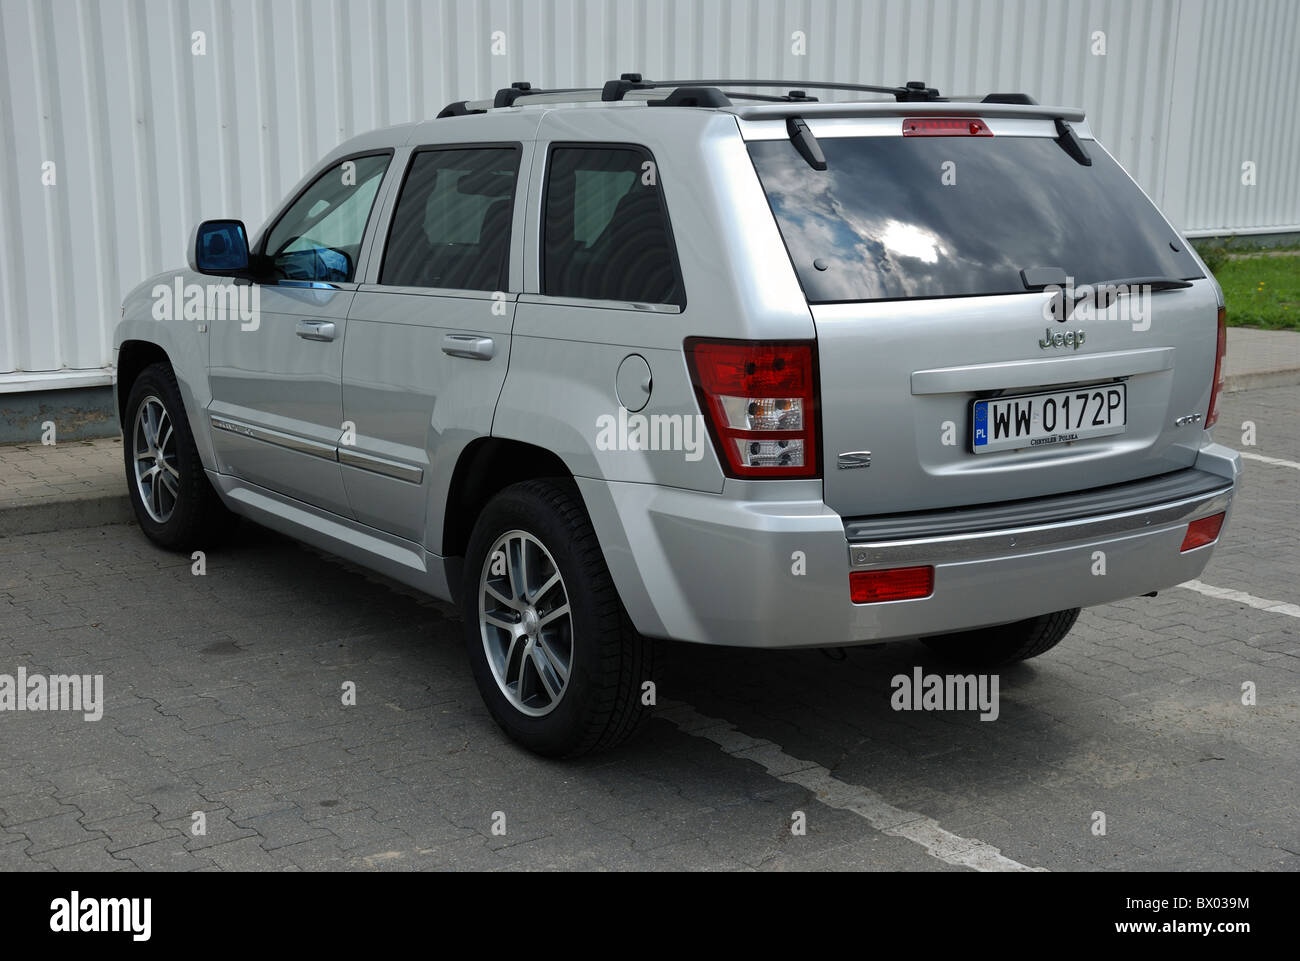 hight resolution of jeep grand cherokee 3 0 crd my 2005 wk silver metallic us popular large off road 4x4 vehicle city